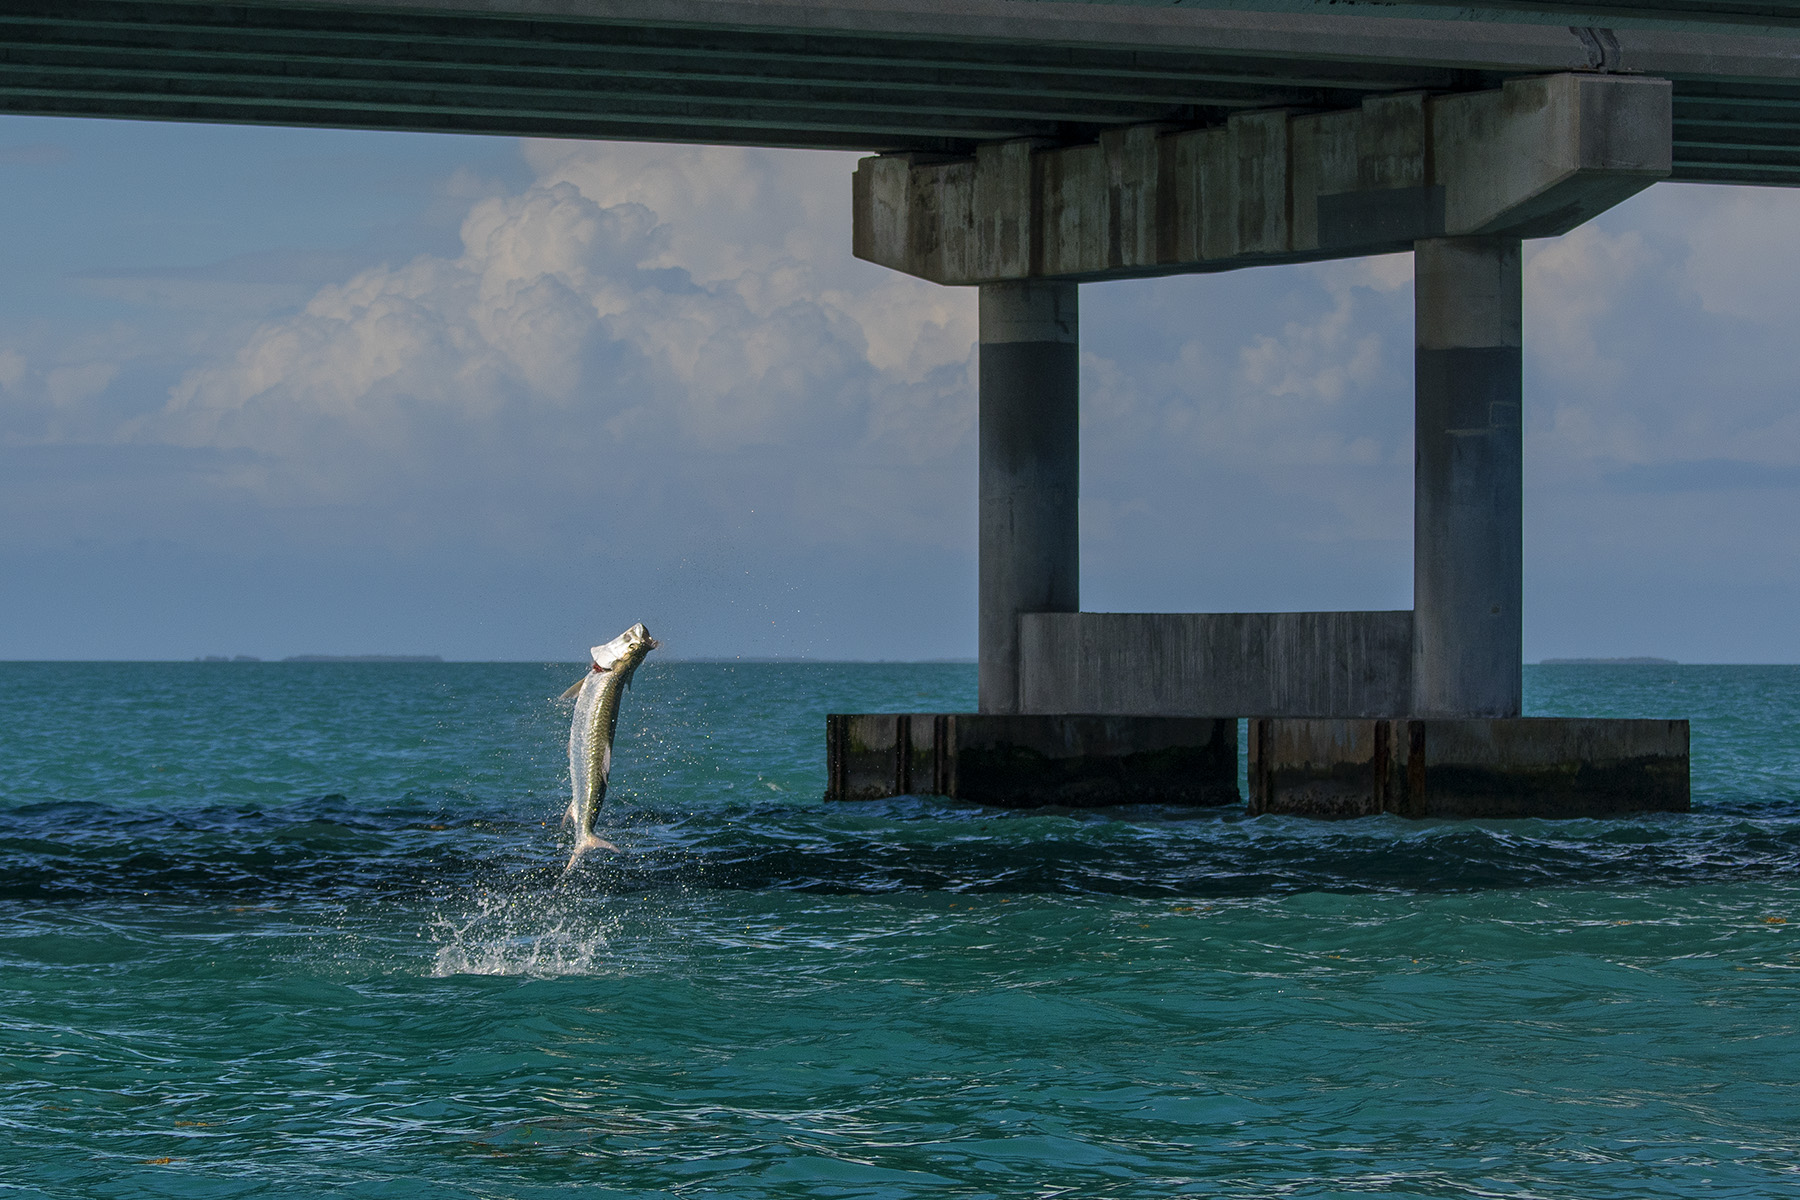 This Tarpon is showing how they accelerate when they hit the air.  Watch this episode now on Waypoint TV.